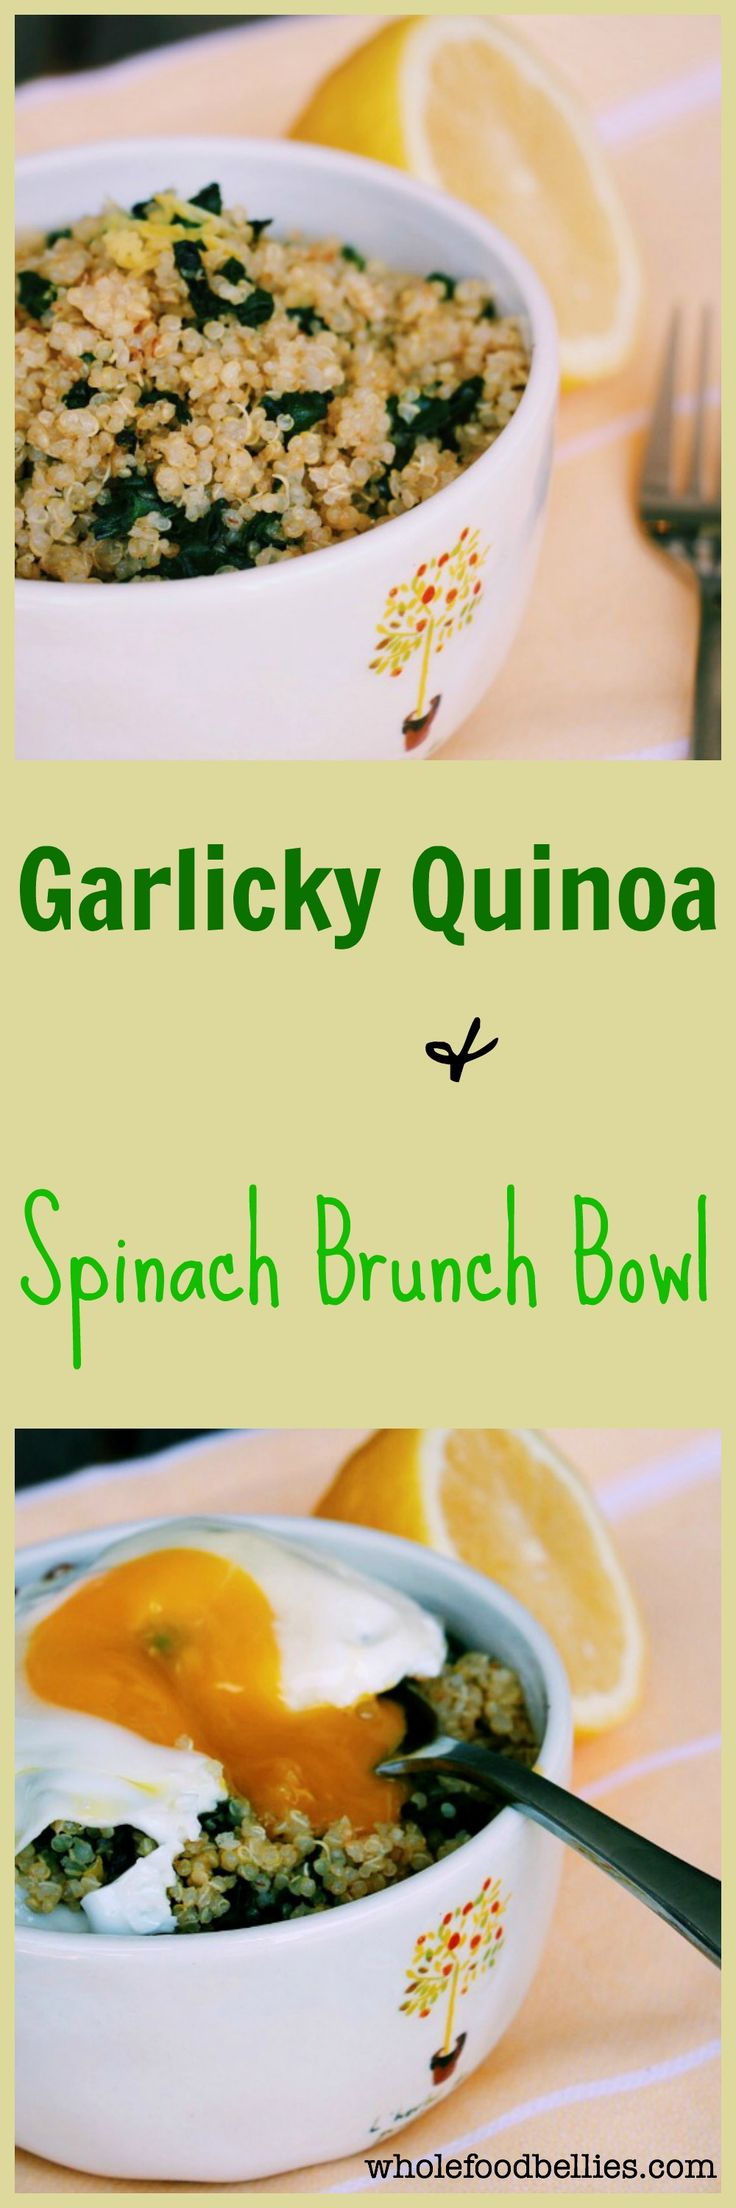 Garlicky Quinoa and Spinach Bowl. Simple and delicious one pot brunch bowl